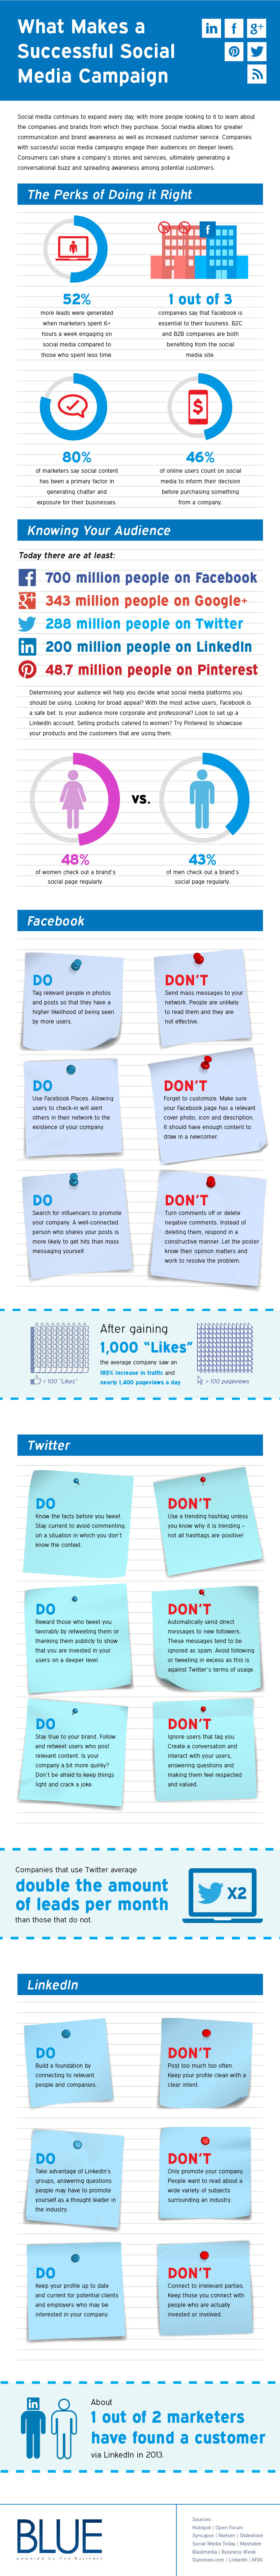 How To Make A Successful Social Media Campaign : infographic